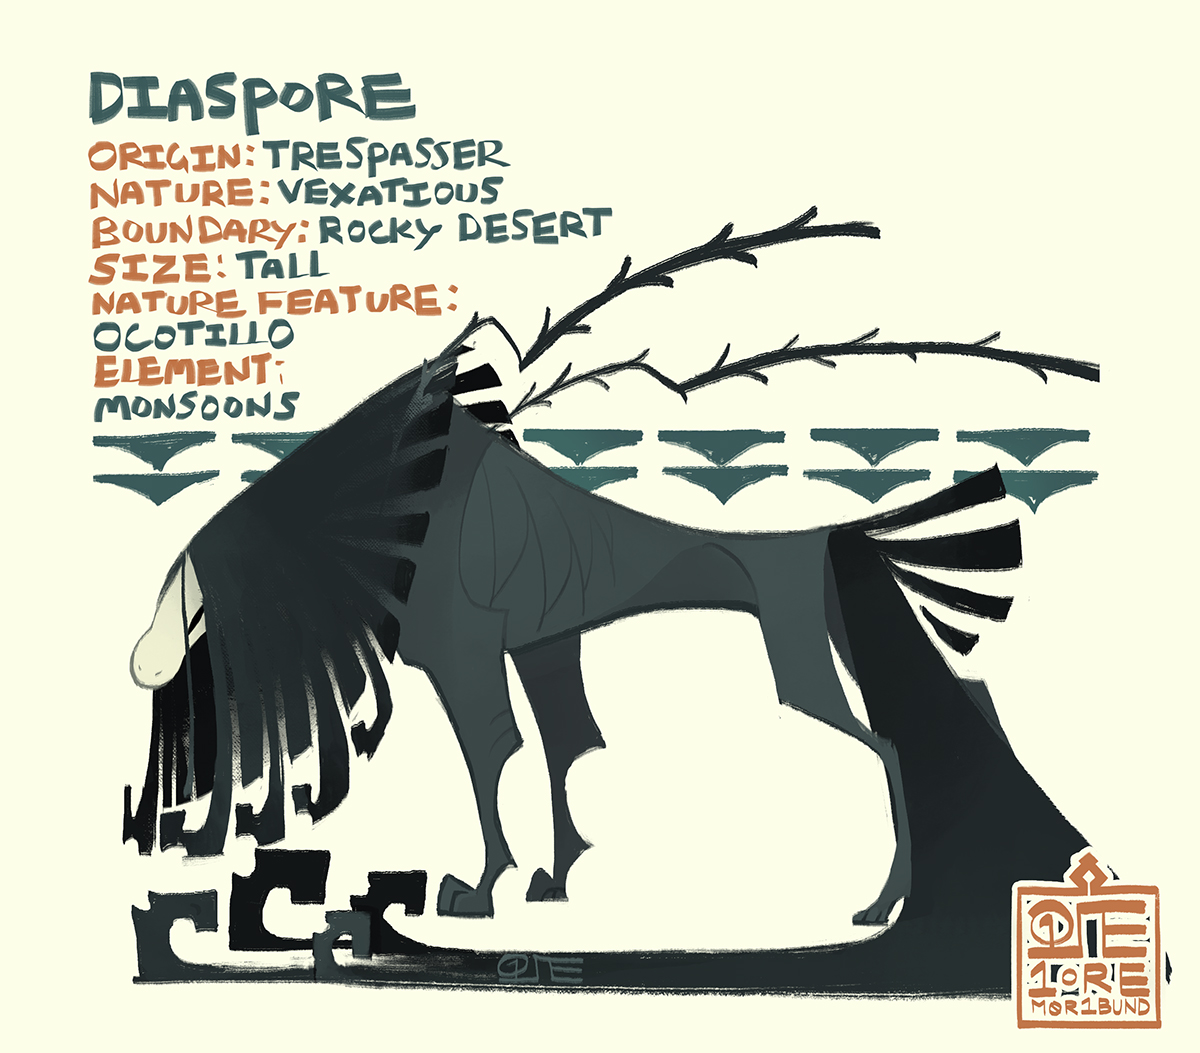 A reference sheet for Diaspore. She's a lanky esk with wild, radially patterned hair, and is all black but for her white mask. Two dry stems of ocotillo trail behind her from the nook between her collar and shoulderblades.